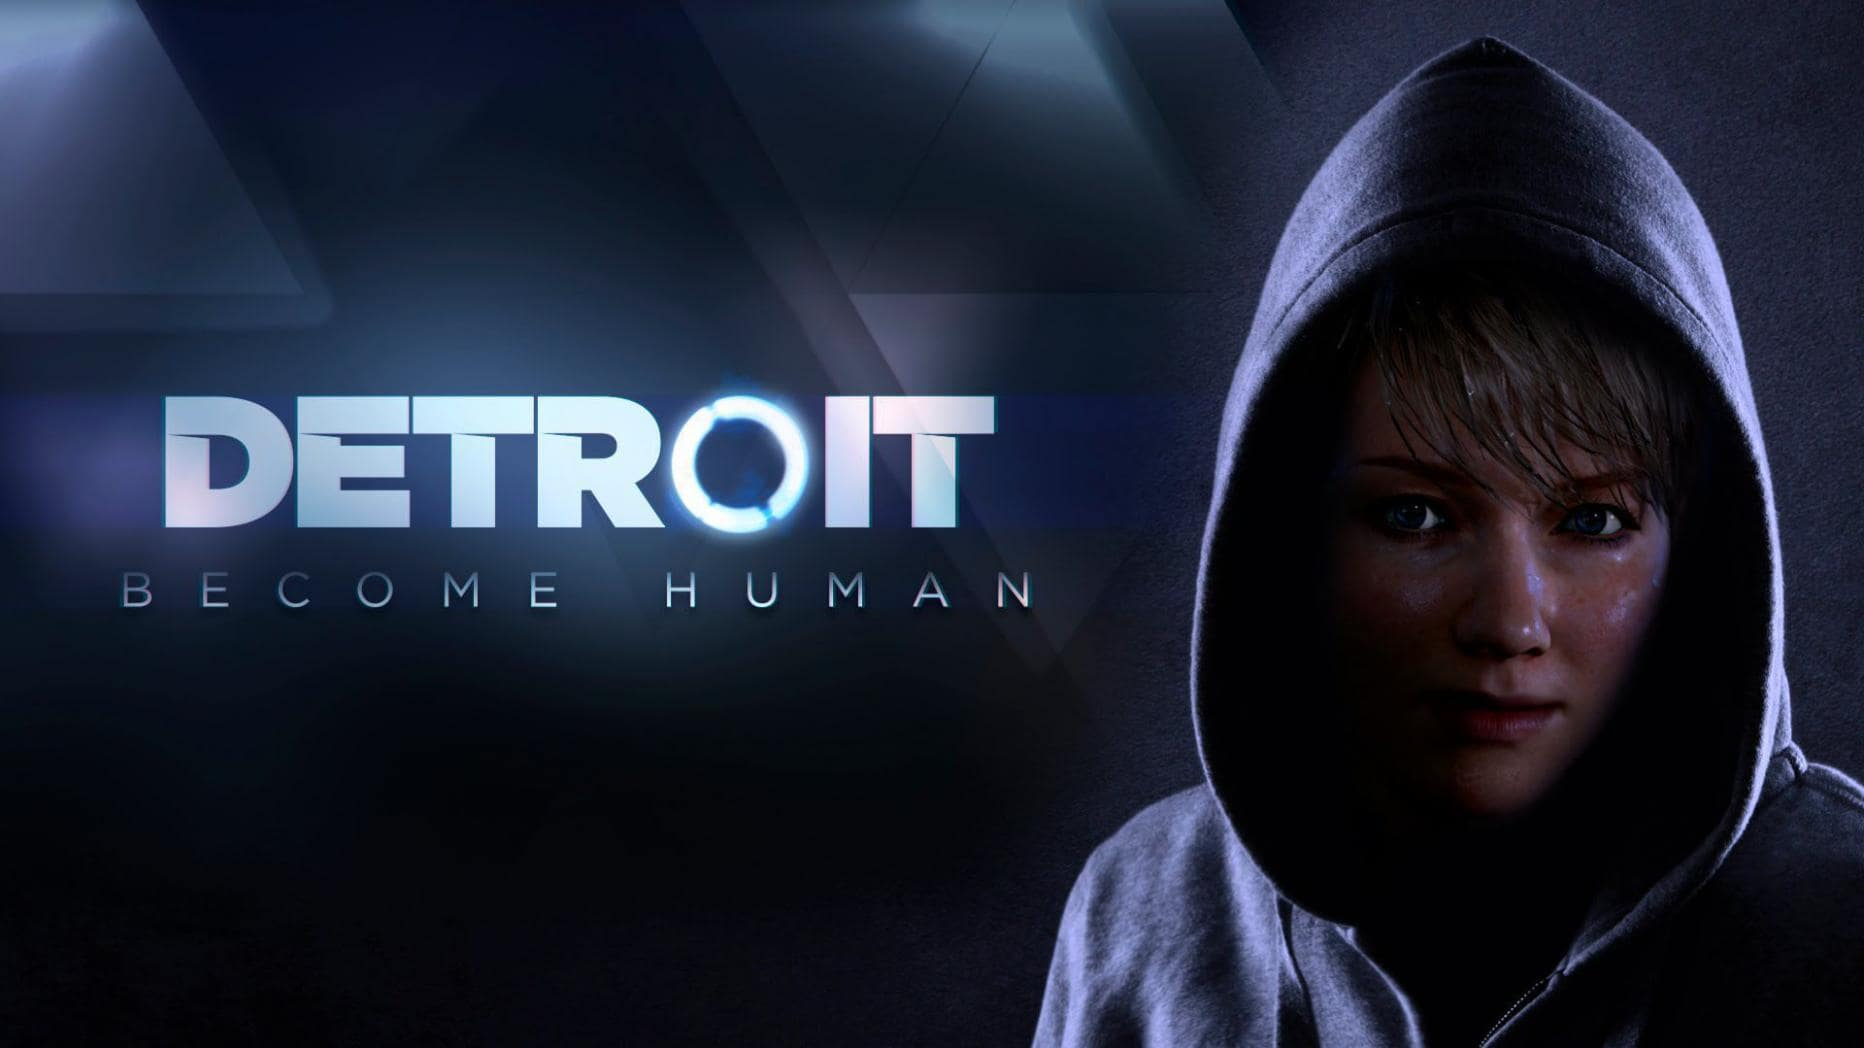 detroit  become human hd wallpapers 32974 2499208 1864x1048 min - سی دی کی اشتراکی  Detroit: Become Human